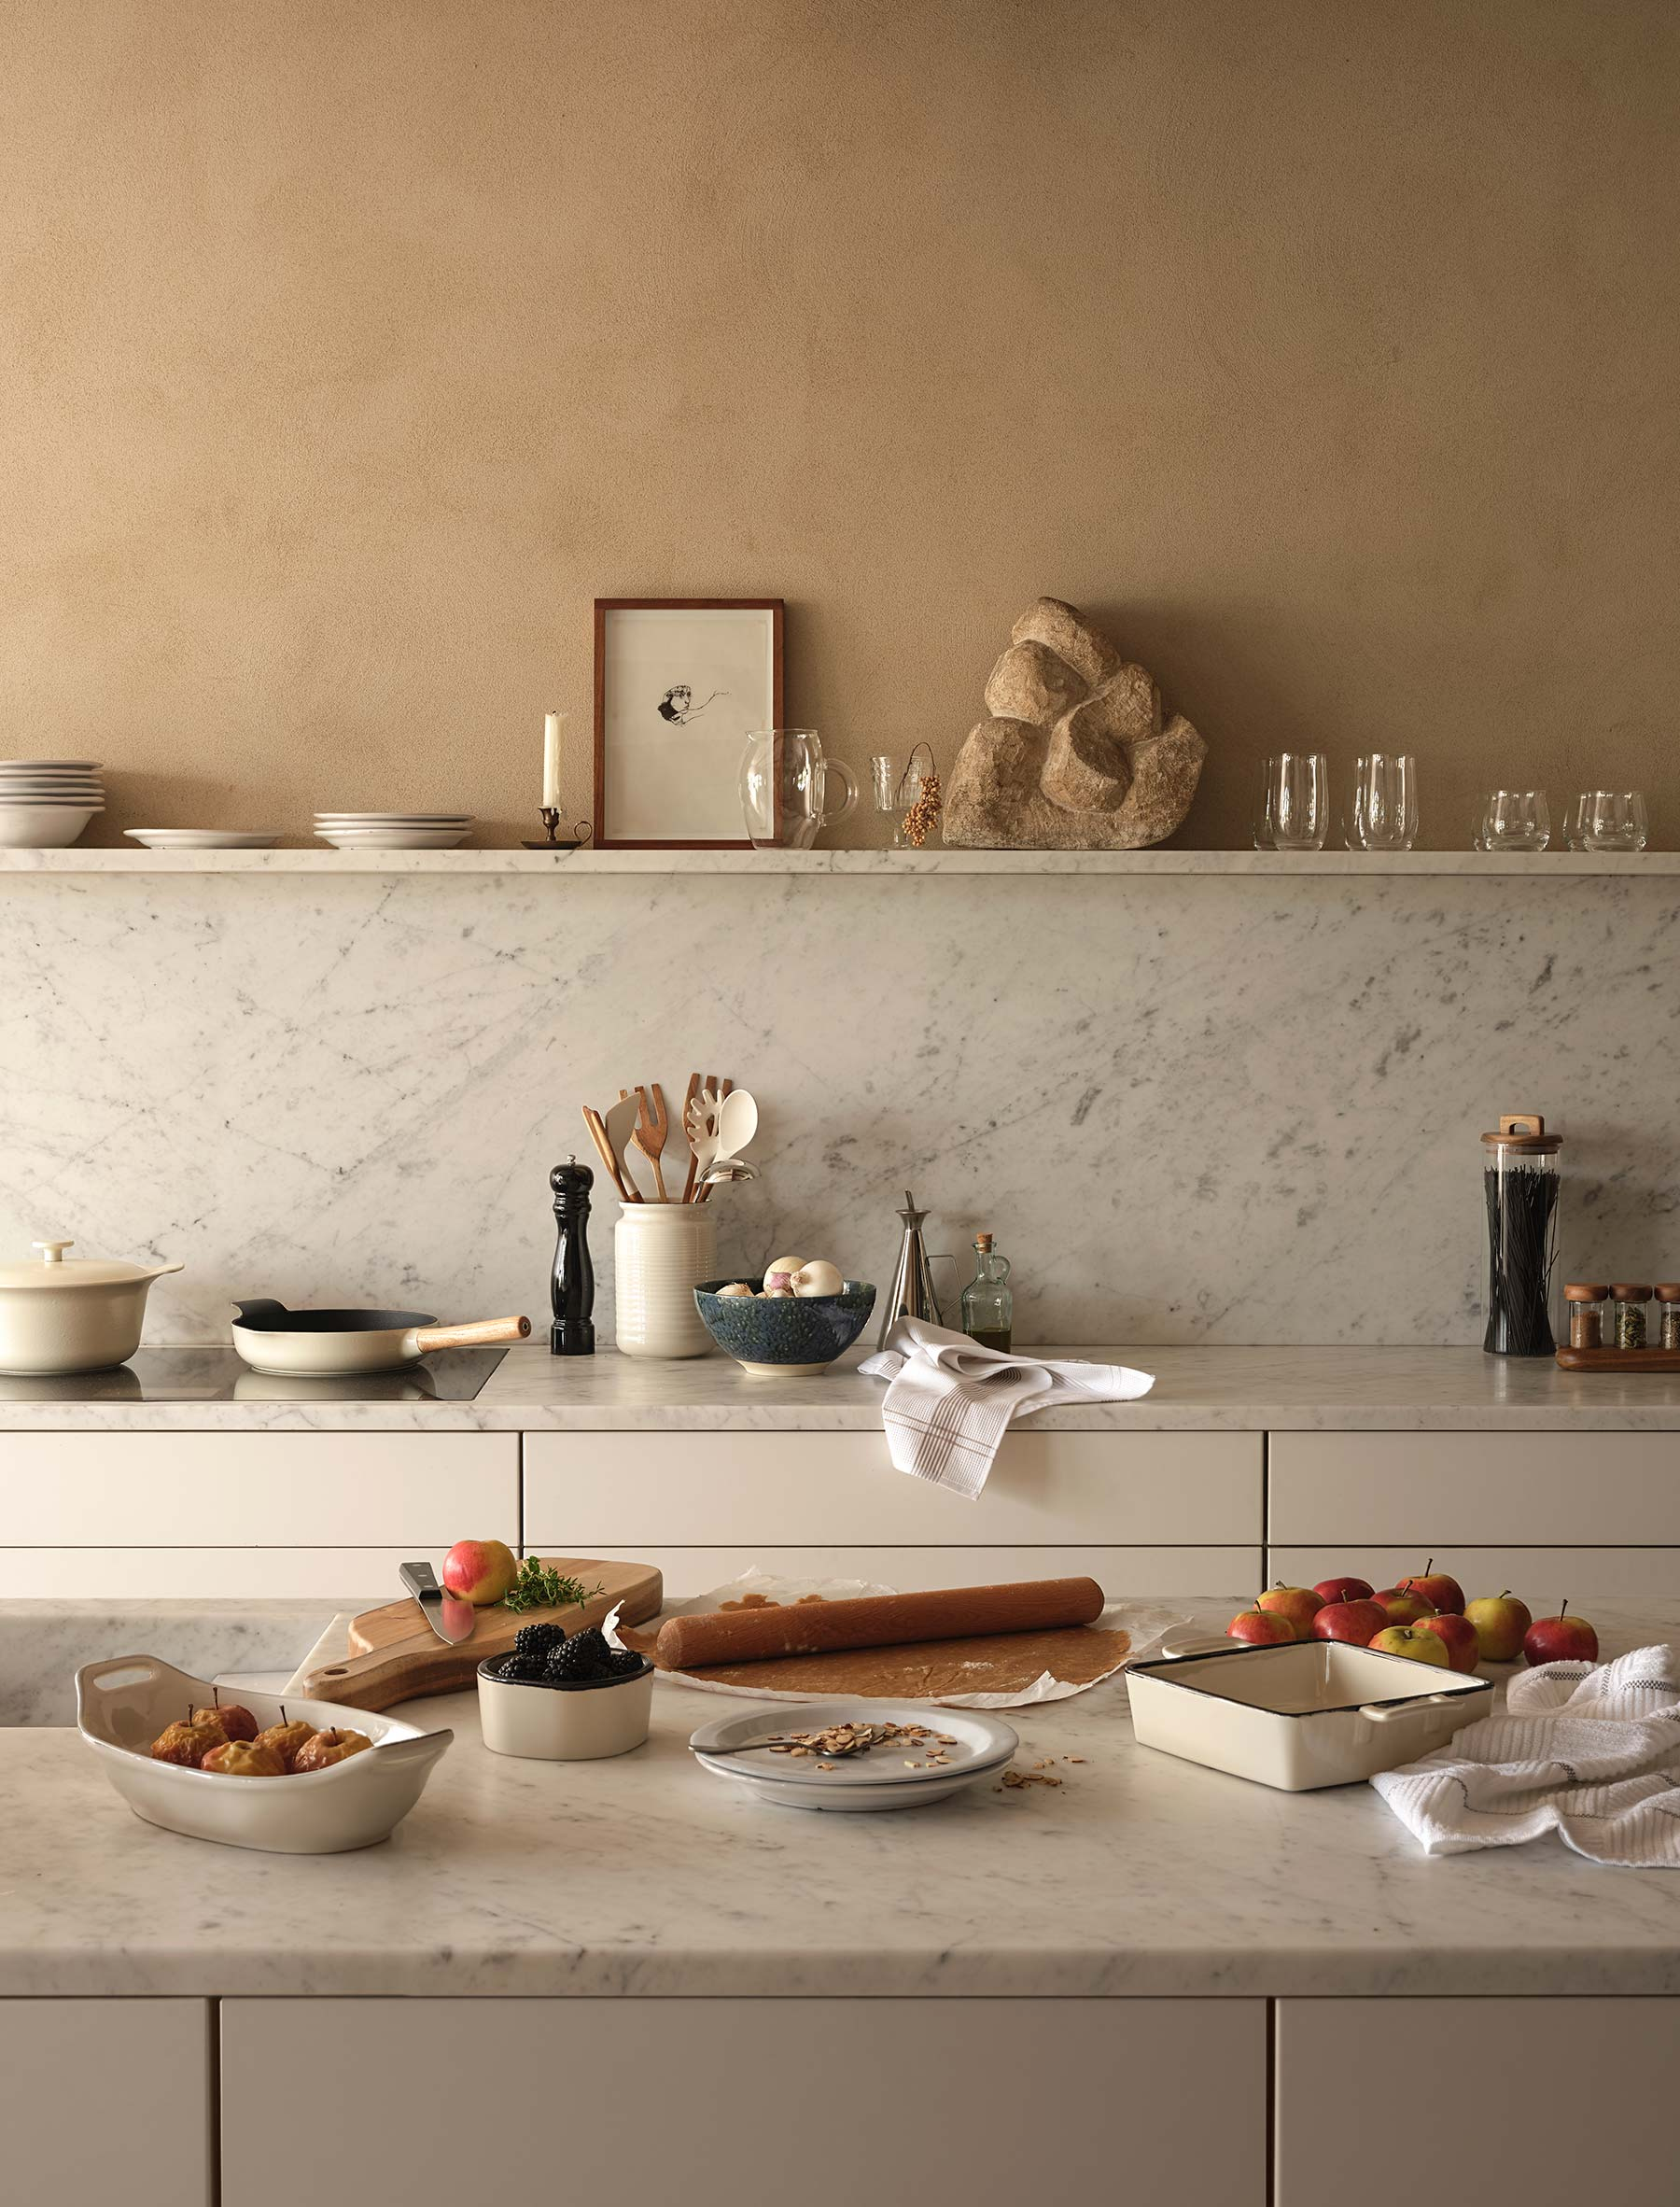 Zara Home Kitchen Editorial shot.